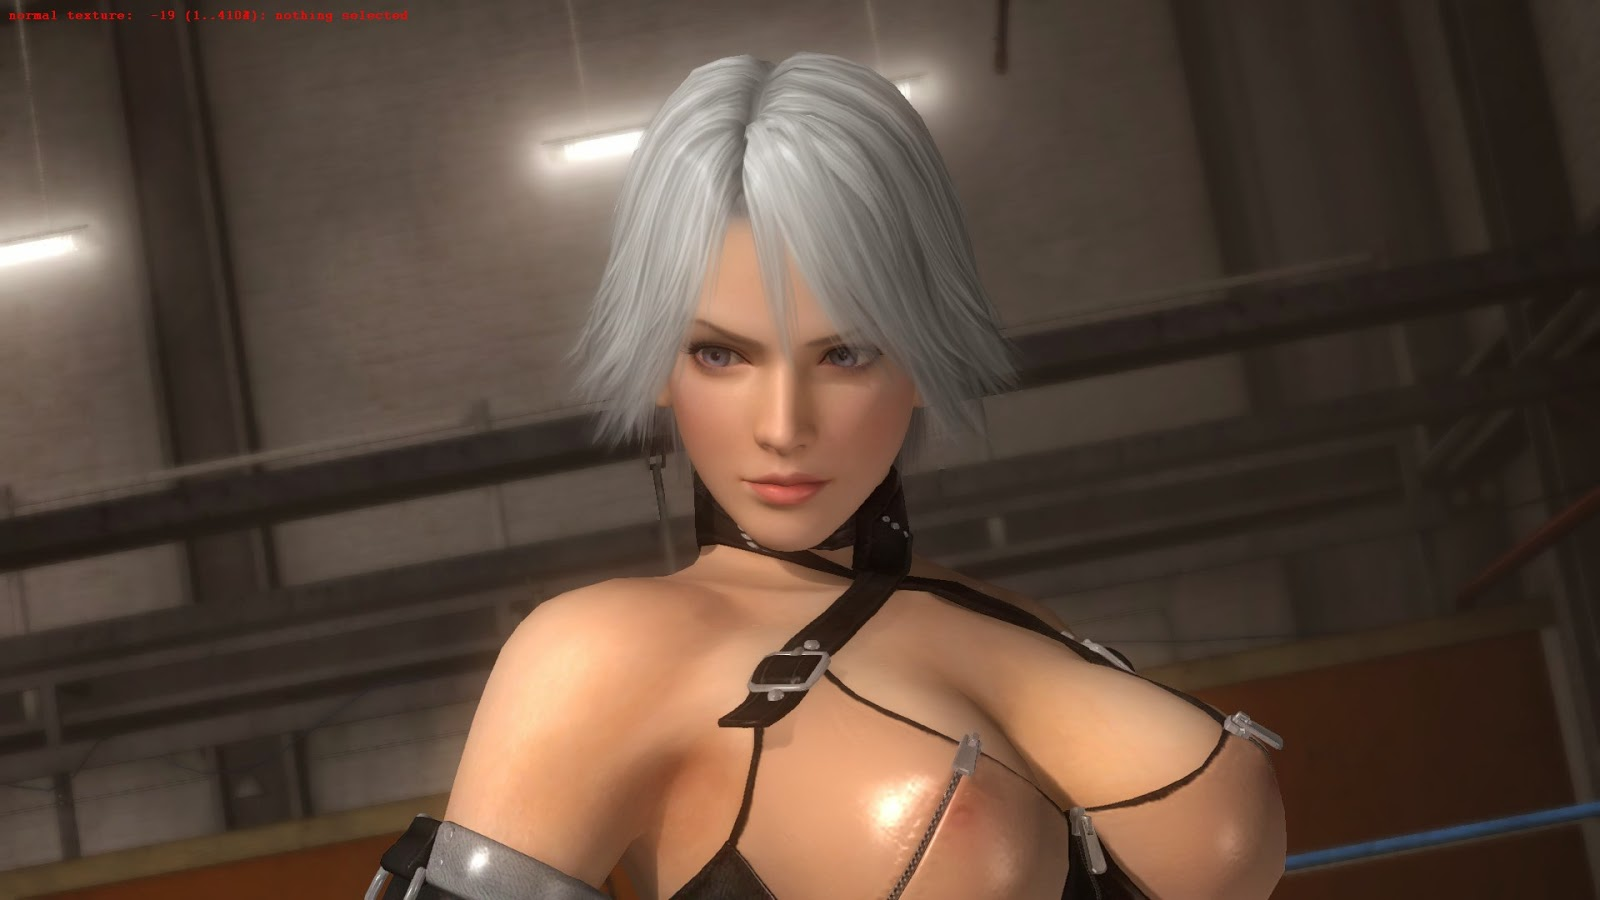 3D Sexy Game sexy game pc wallpaper - 3d hot and sexy pc game picture